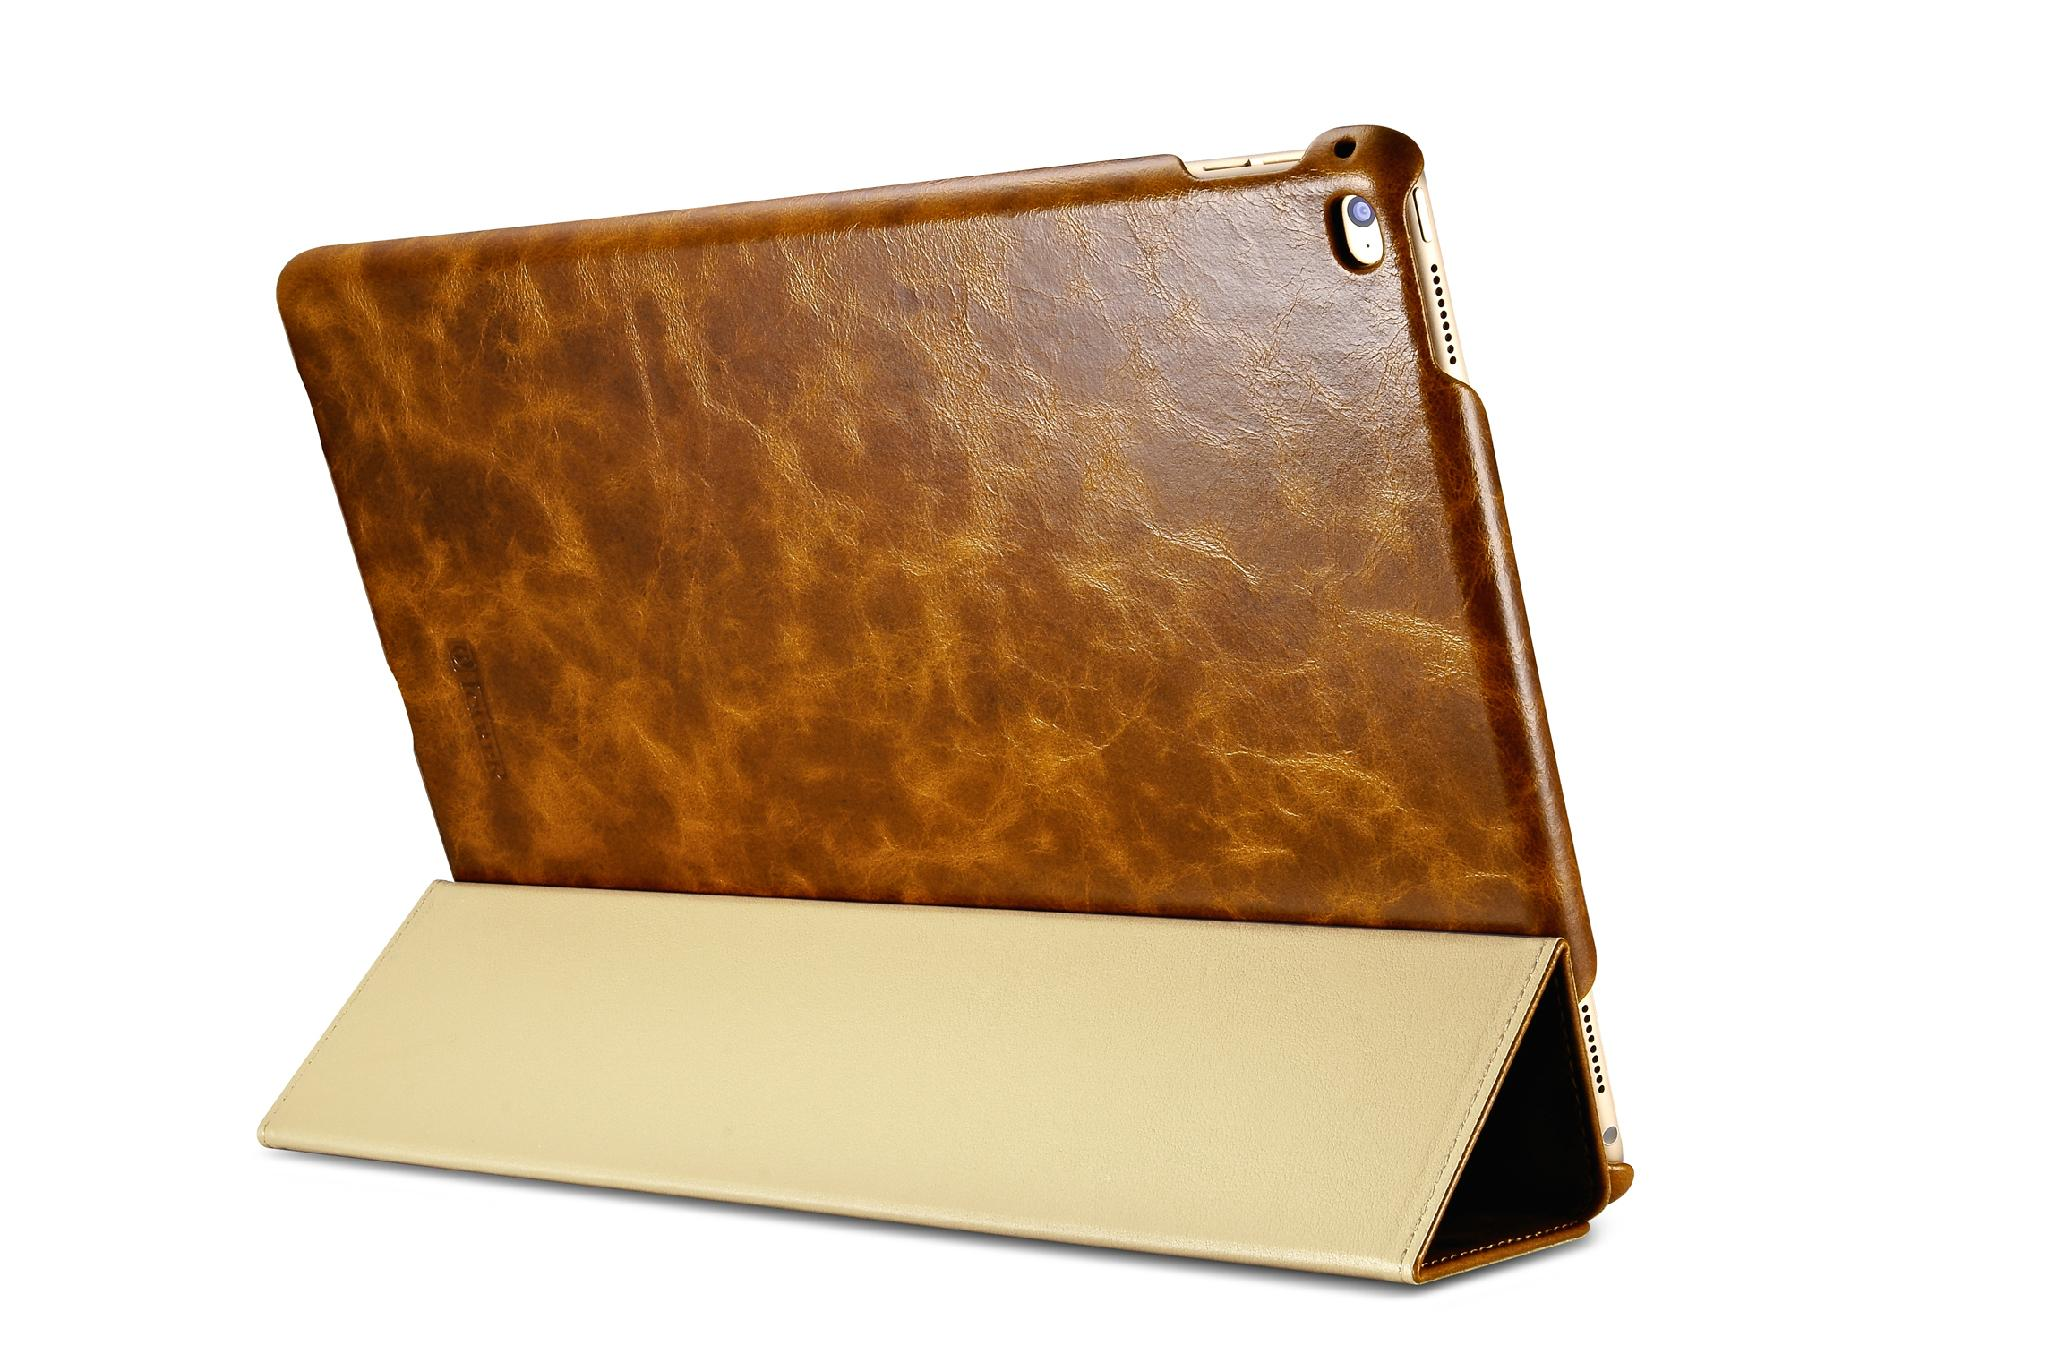 iCarer iPad Pro 12.9 inch Oil Wax Vintage Genuine Leather Folio Case 17